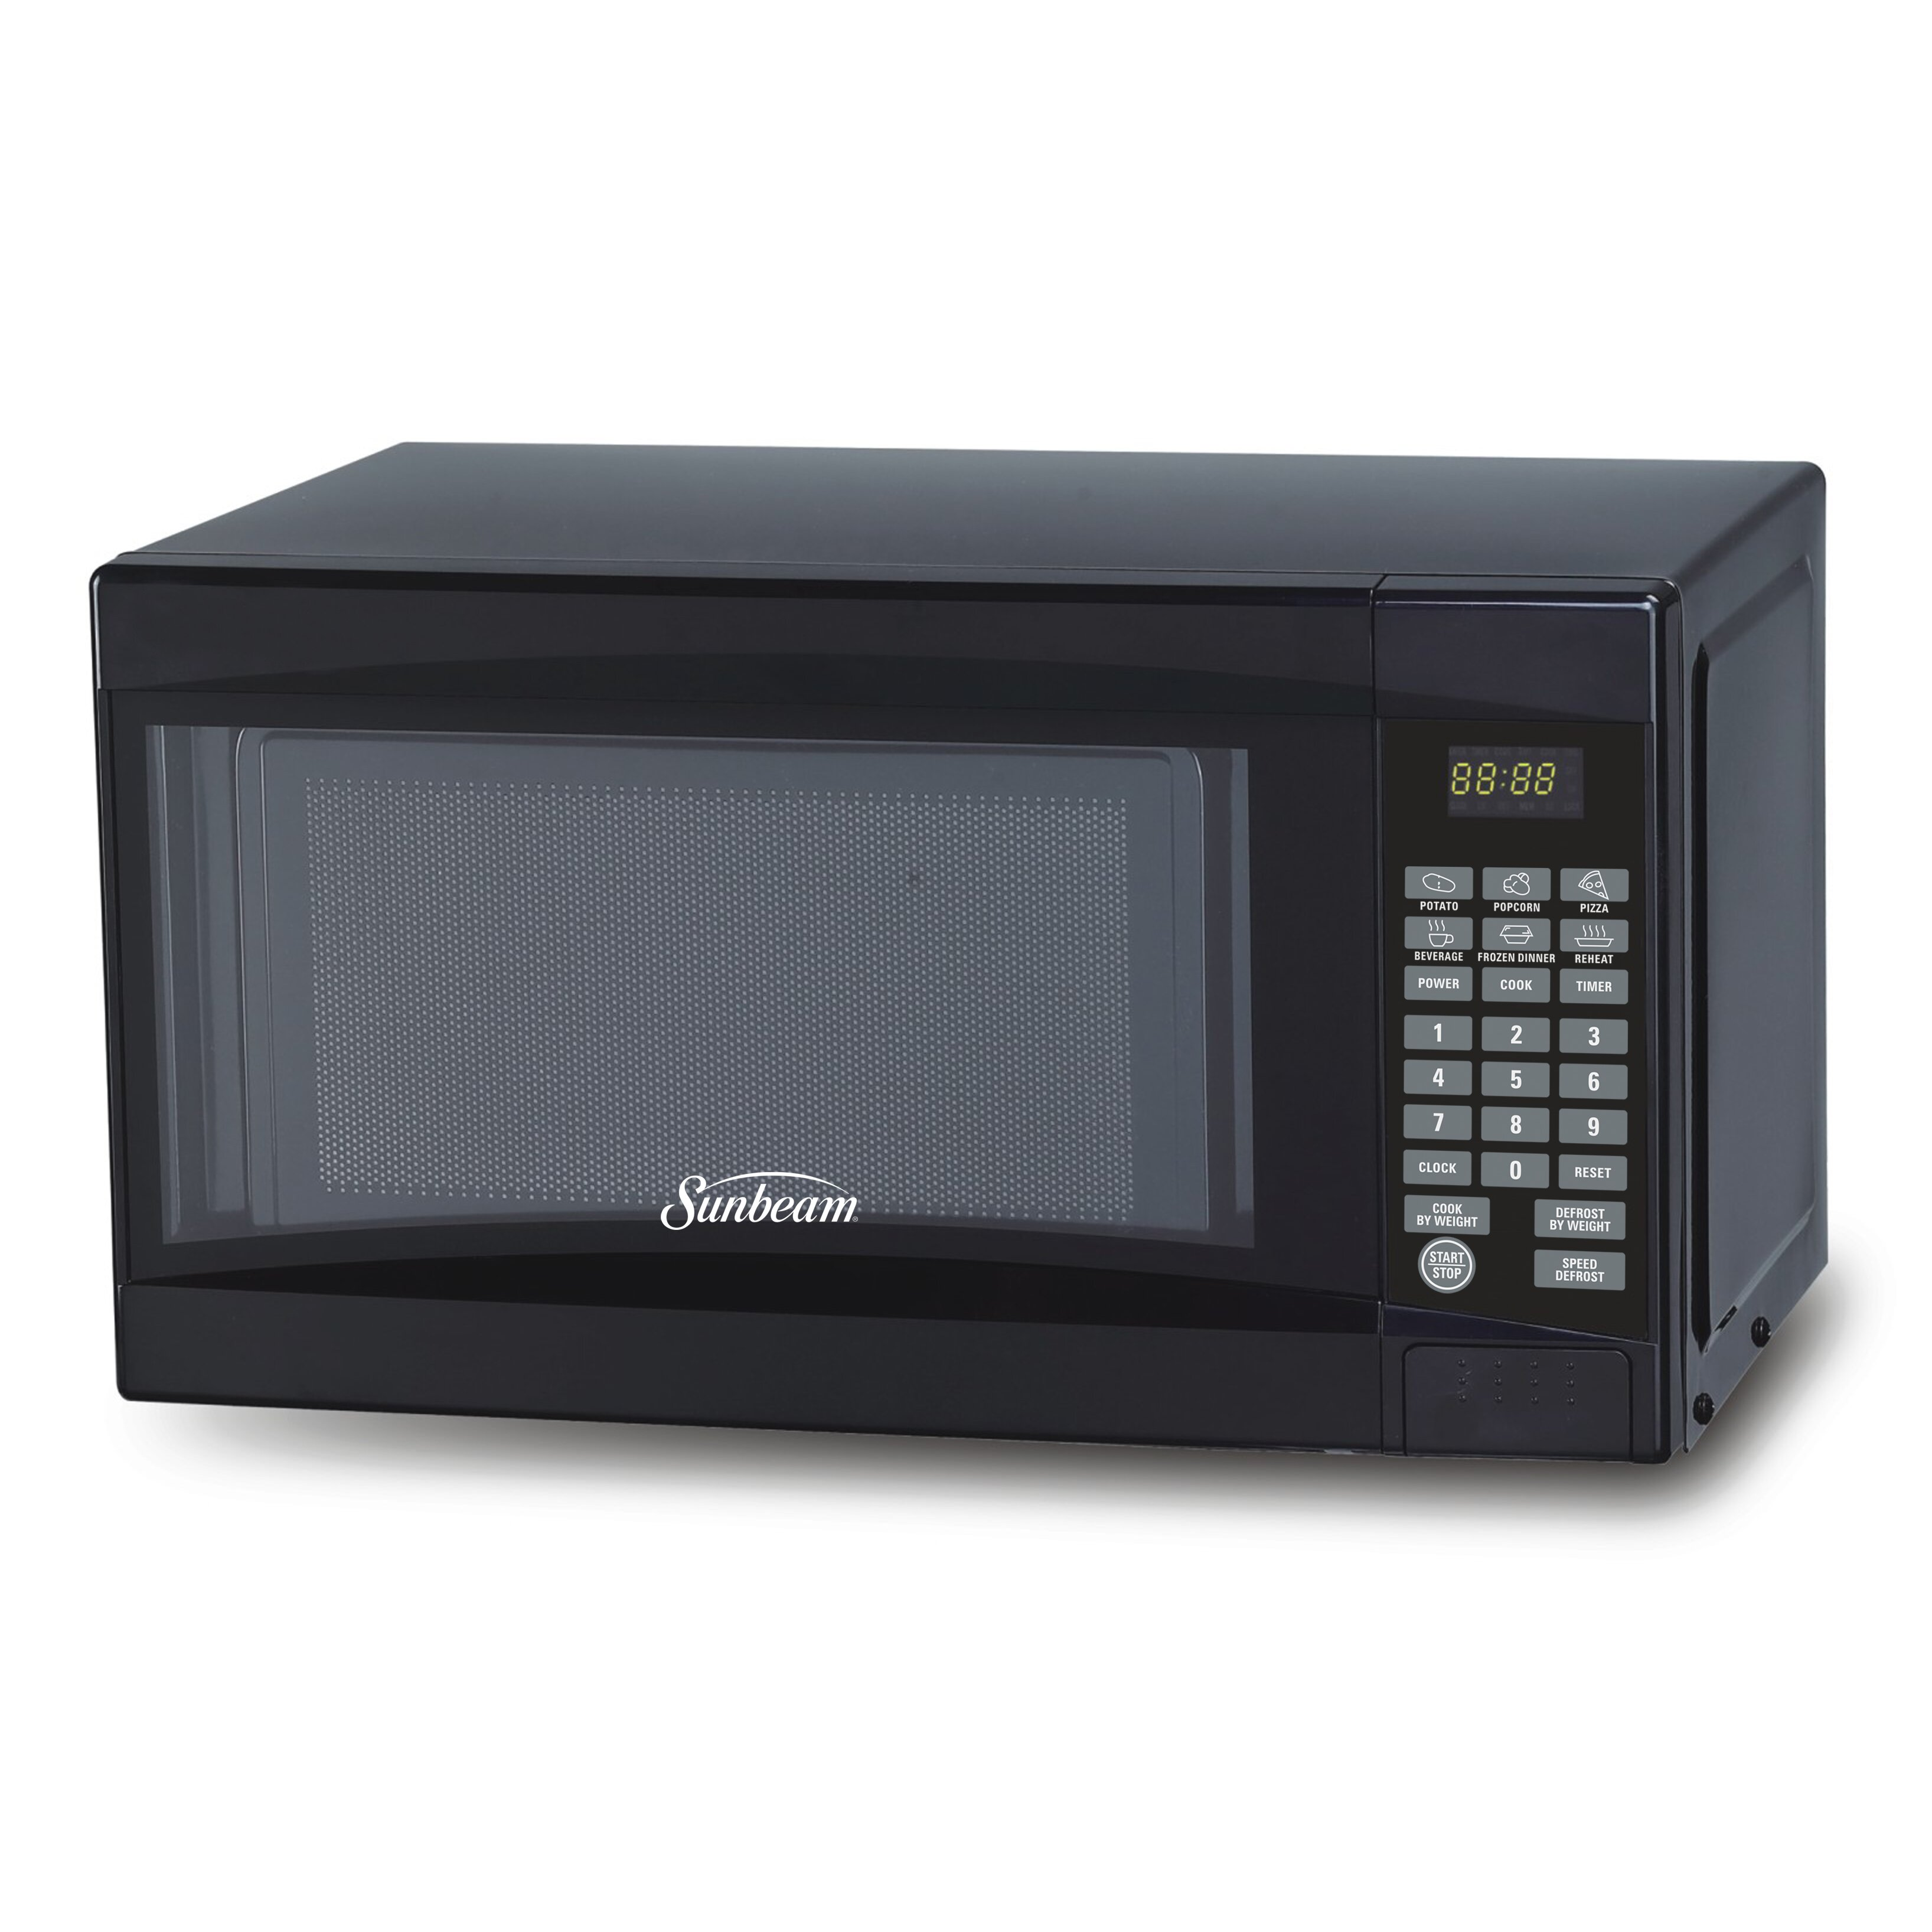 Countertop Microwave Stand : Brentwood Appliances 0.7 Cu. Ft. 700W Countertop Microwave